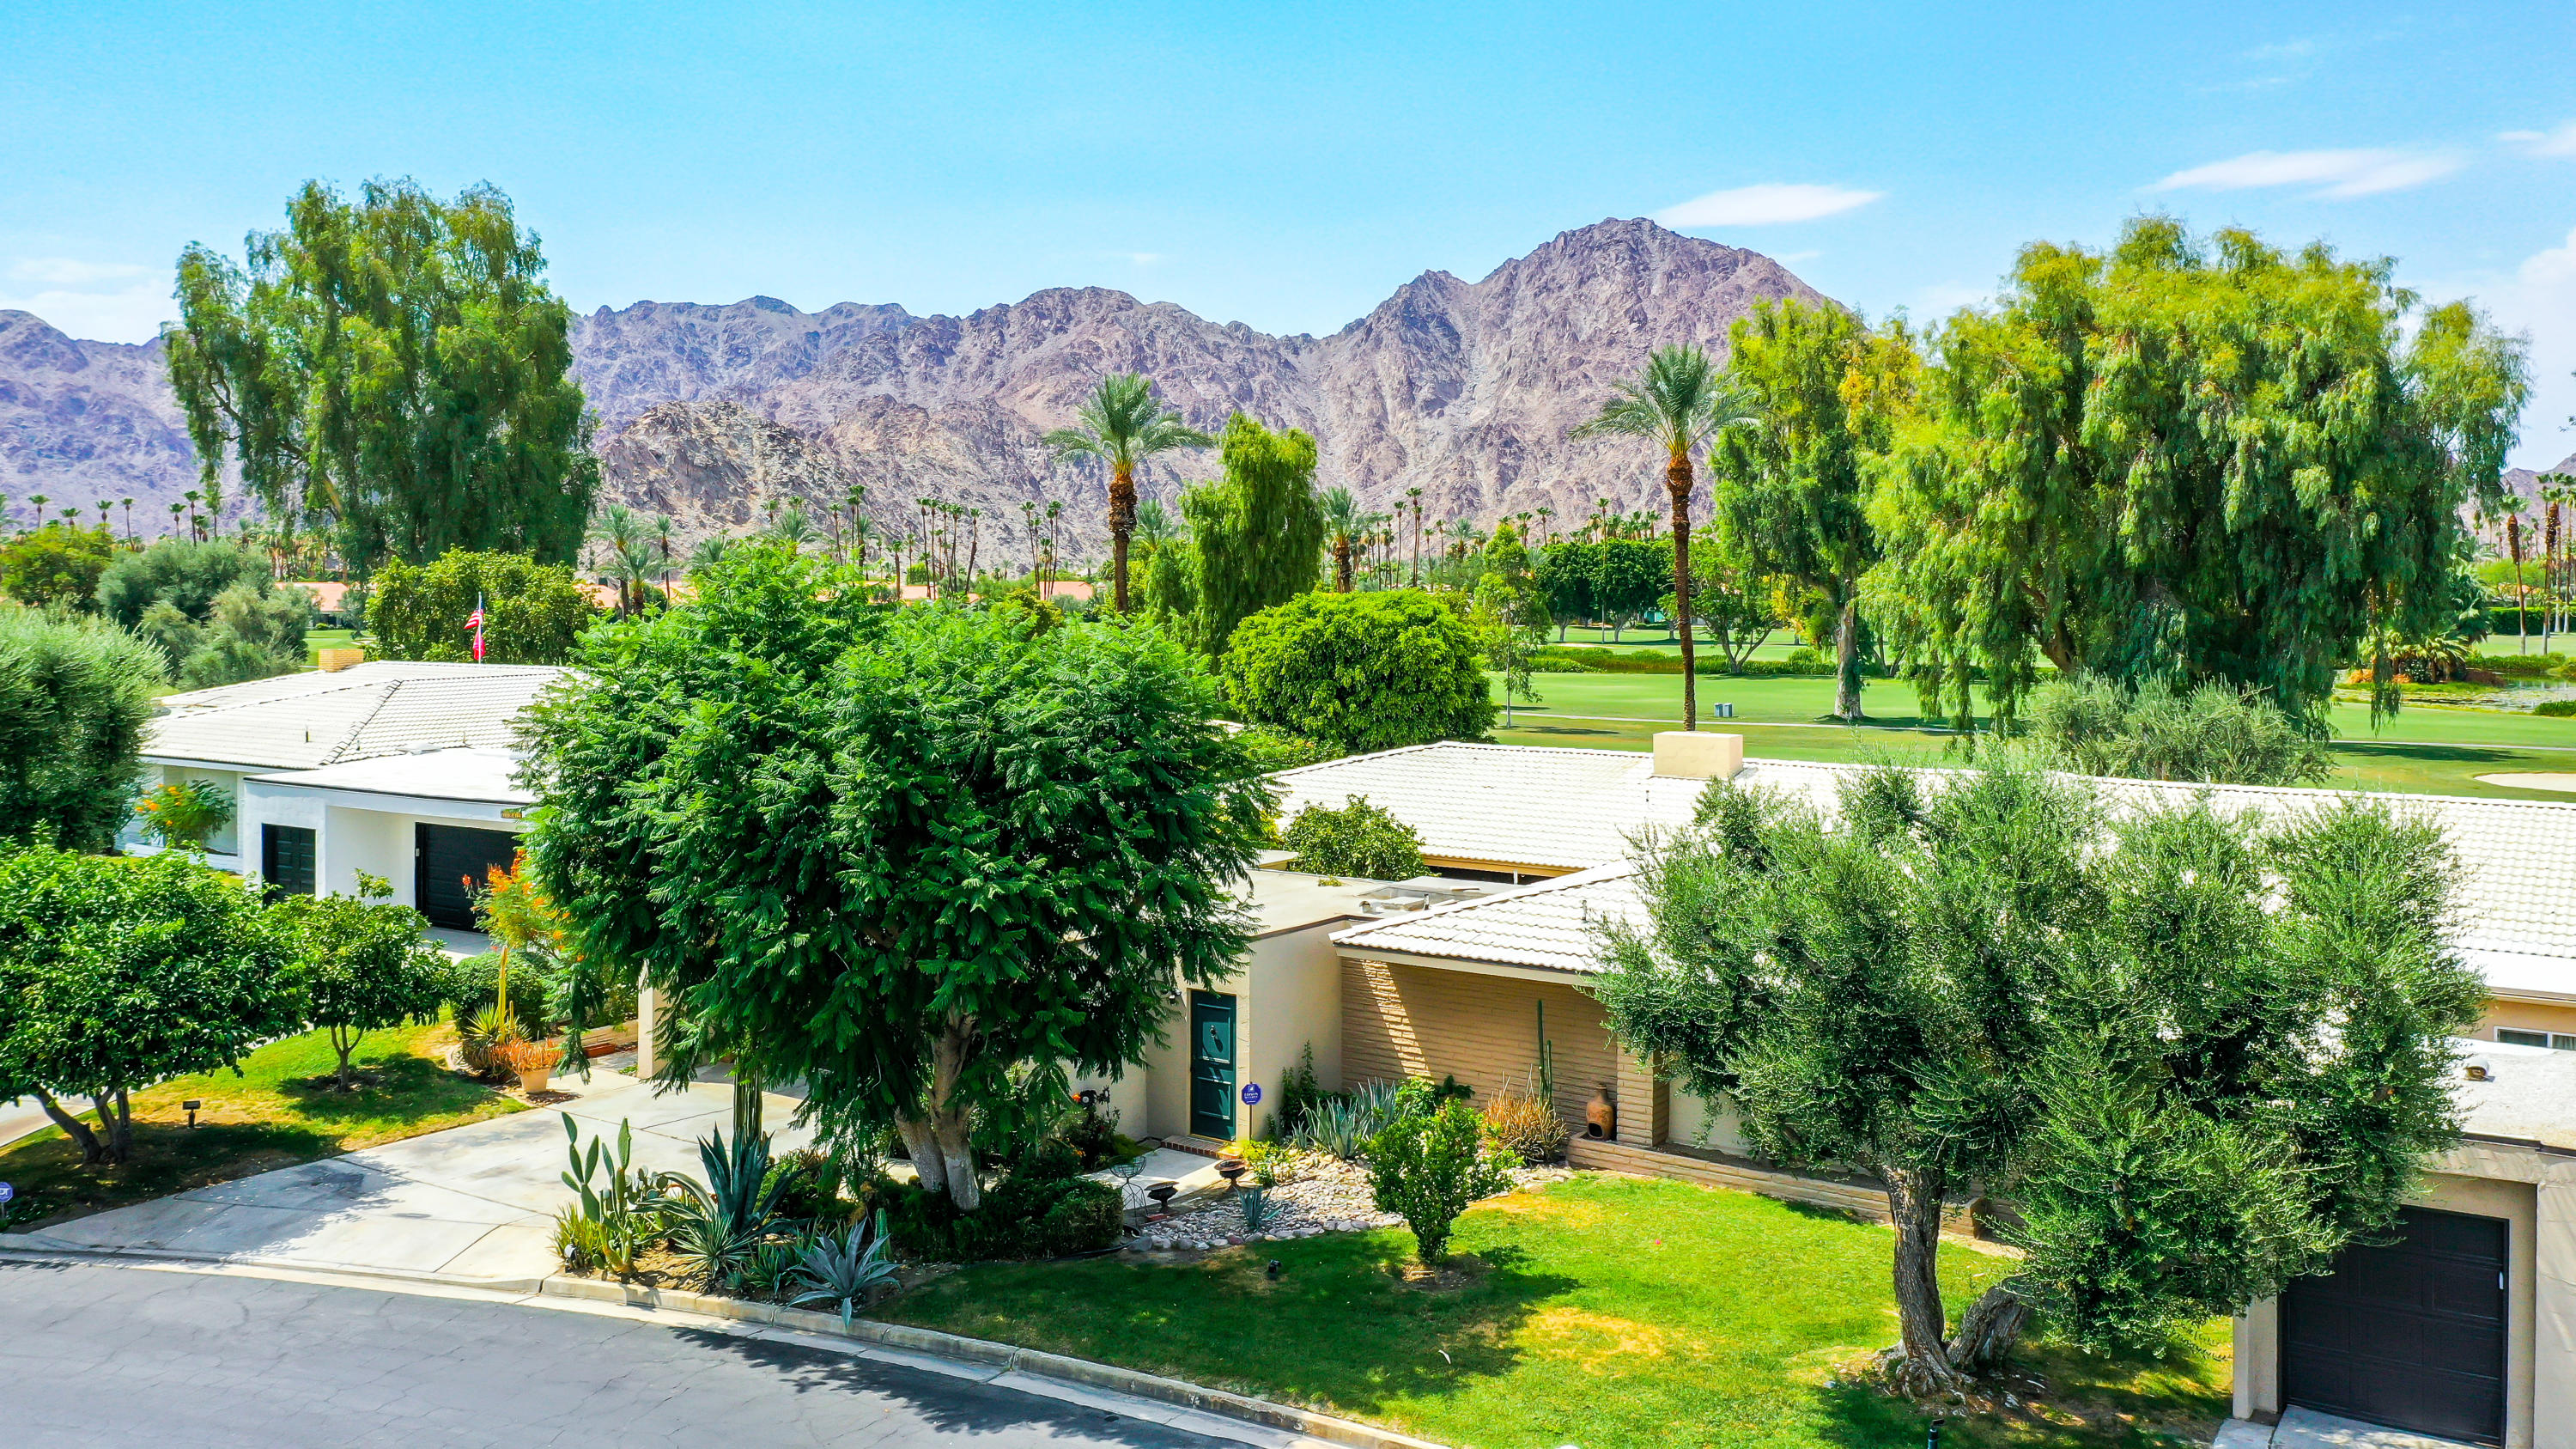 (*Coming Soon*) Million dollar location in a fabulous hidden enclave in South La Quinta. This spacious 2300sf  floor plan is located on an elevated lot overlooking the 1st Fairway - within walking distance to the famous La Quinta Country Club clubhouse. Breath taking mountain views across 4 fairways from interior living spaces and back patio. This is a clean palate waiting for your personal lifestyle changes to the interior.  This floor plan offers an interior courtyard which you can convert to living space or maintain for organic atrium enjoyment.  There is Catch & Release fishing plus battery operated boats allowed on lake. The 3rd car bay in the 504sf garage has been converted to den. Low cost IID utility district. No mandatory membership.  You own the land. The low $600-mo HOA fees include exterior building maintenance and exterior landscape maintenance - see attachments. More photos coming